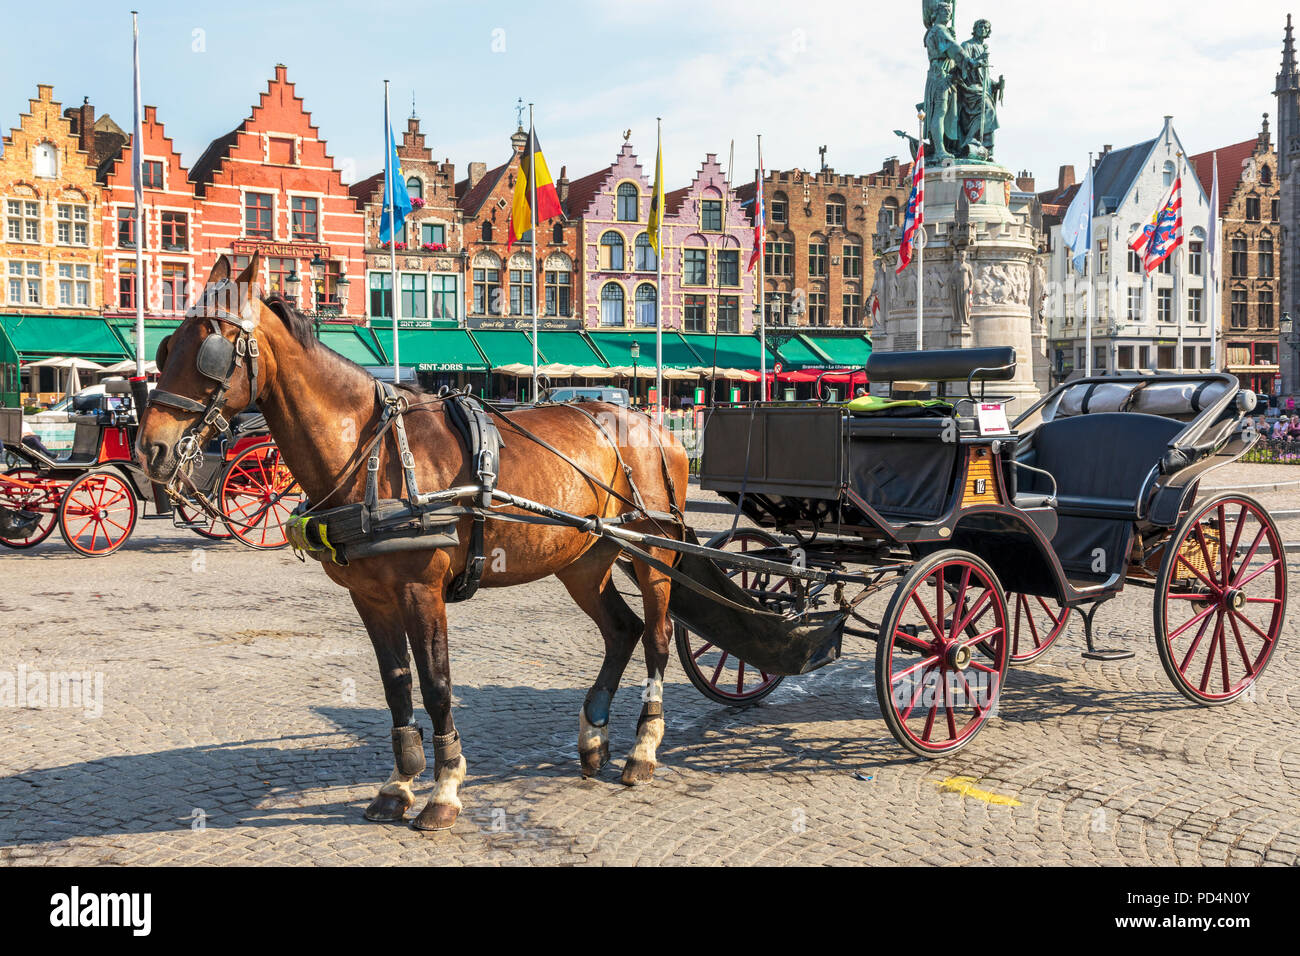 Horse and trap used to take tourists on a city tour, Markt Square, Bruges, Belgium - Stock Image